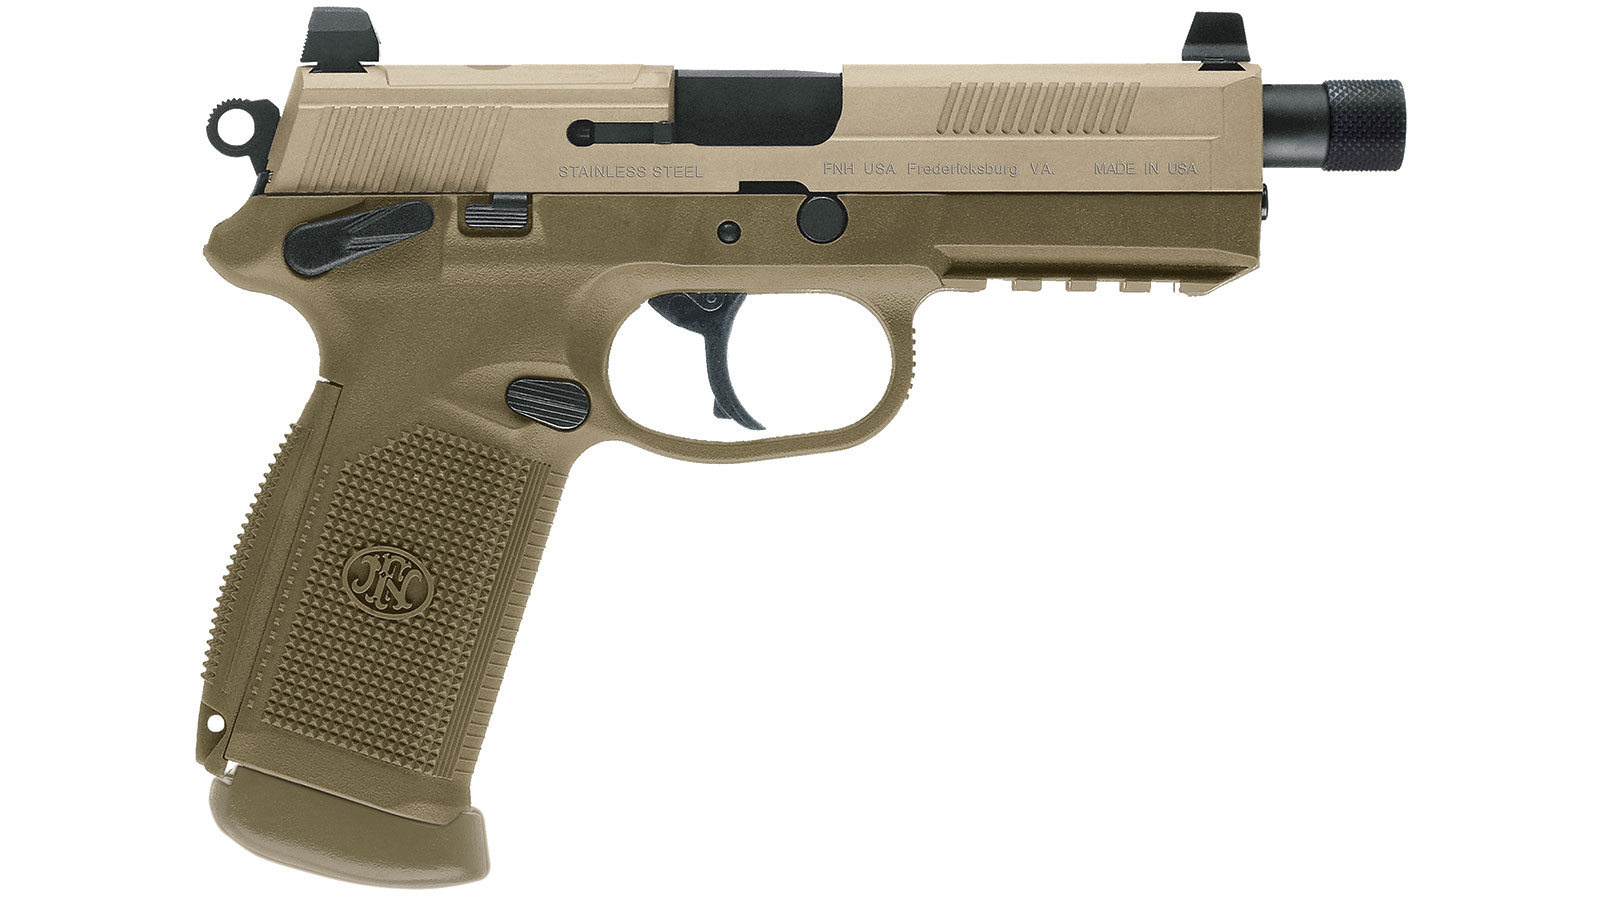 FN 66982 FNX 45 Tactical Single|Double 45 Automatic Colt Pistol (ACP) 5.3 TB 10+1 NS Flat Dark Earth Interchangeable Backstrap Grip Flat Dark Earth Stainless Steel in.